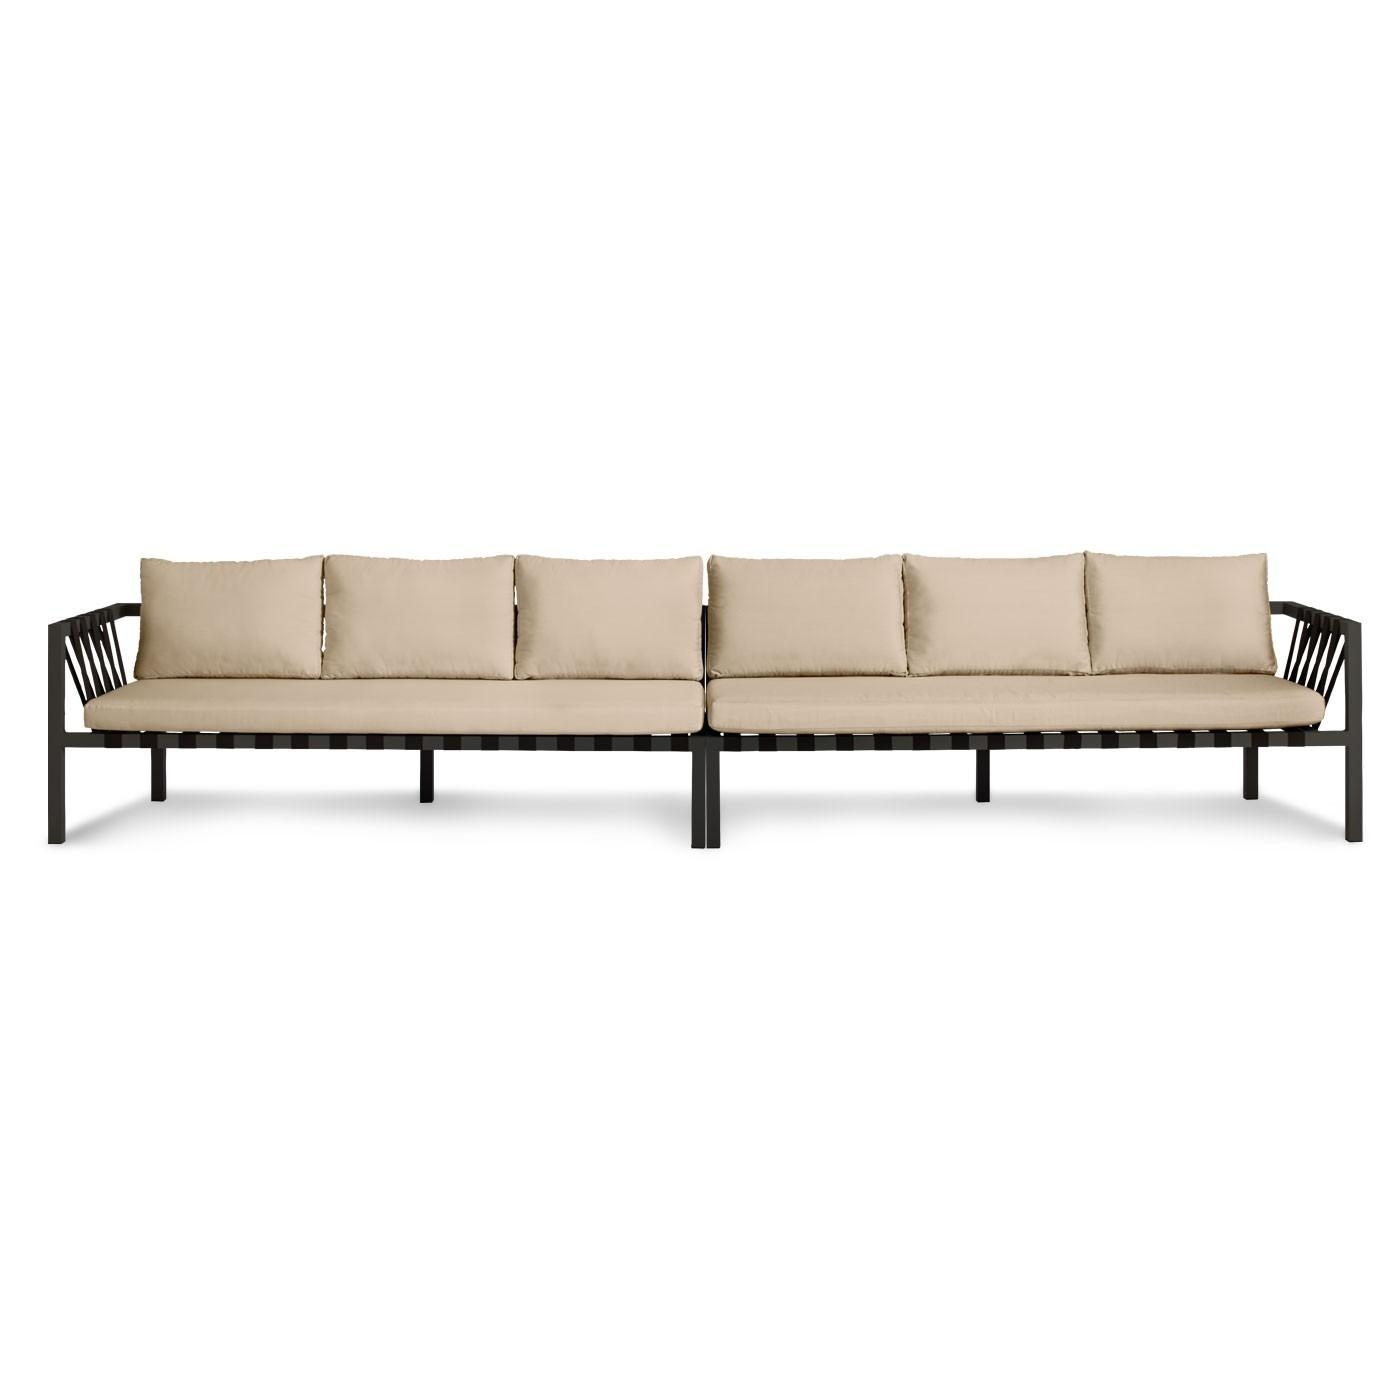 Jibe Extra Long Modern Outdoor Sectional Sofa | Blu Dot throughout Long Sectional Sofa With Chaise